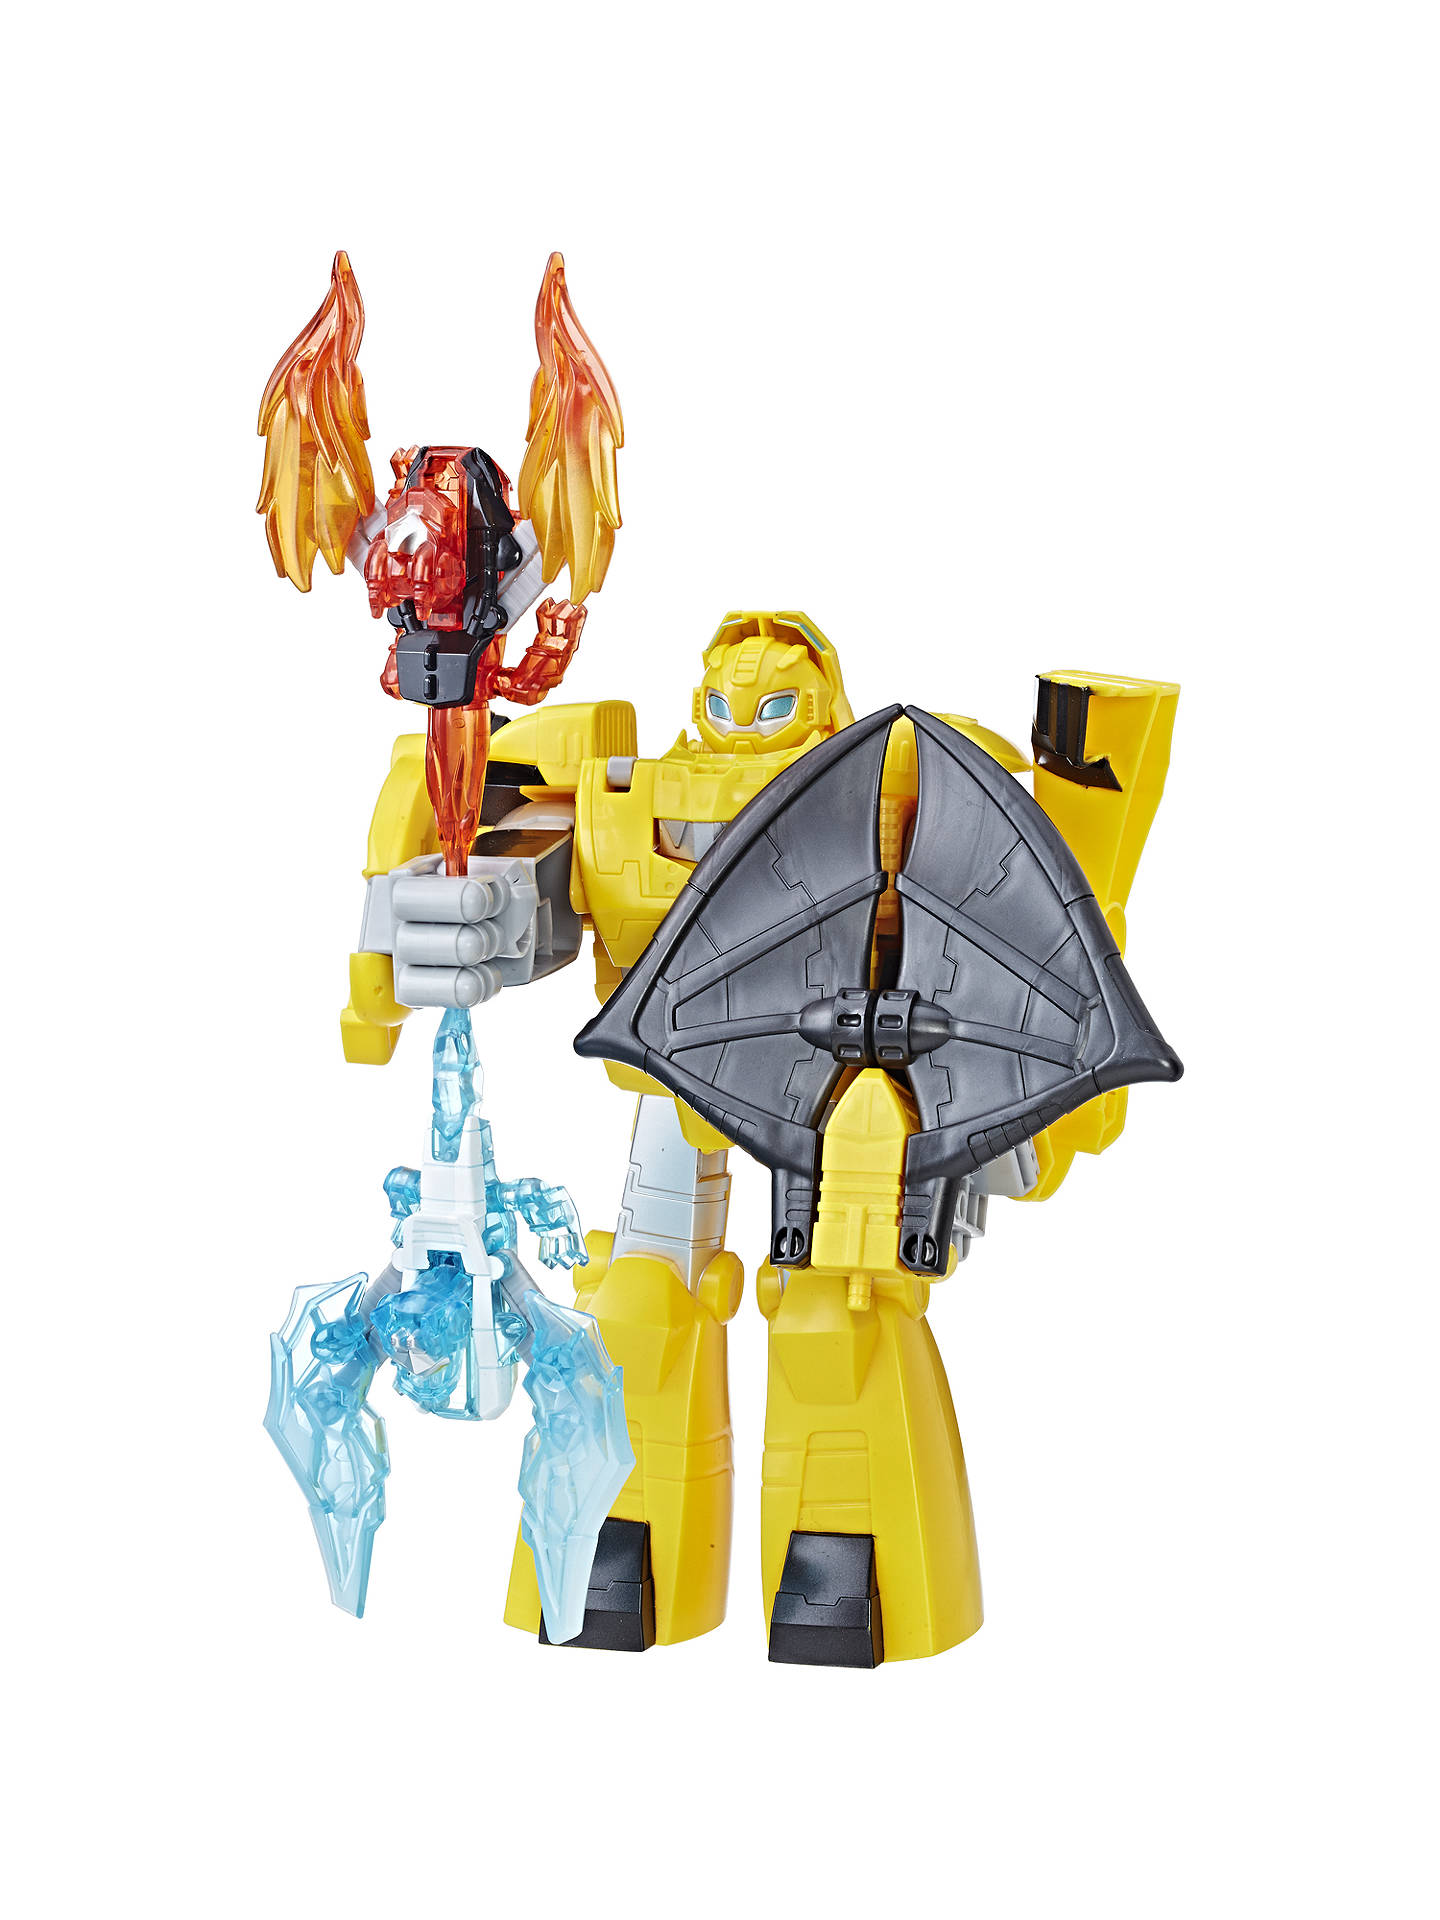 BuyTransformers Rescue Bot Knight Watch Bumblebee Action Figure Online at johnlewis.com